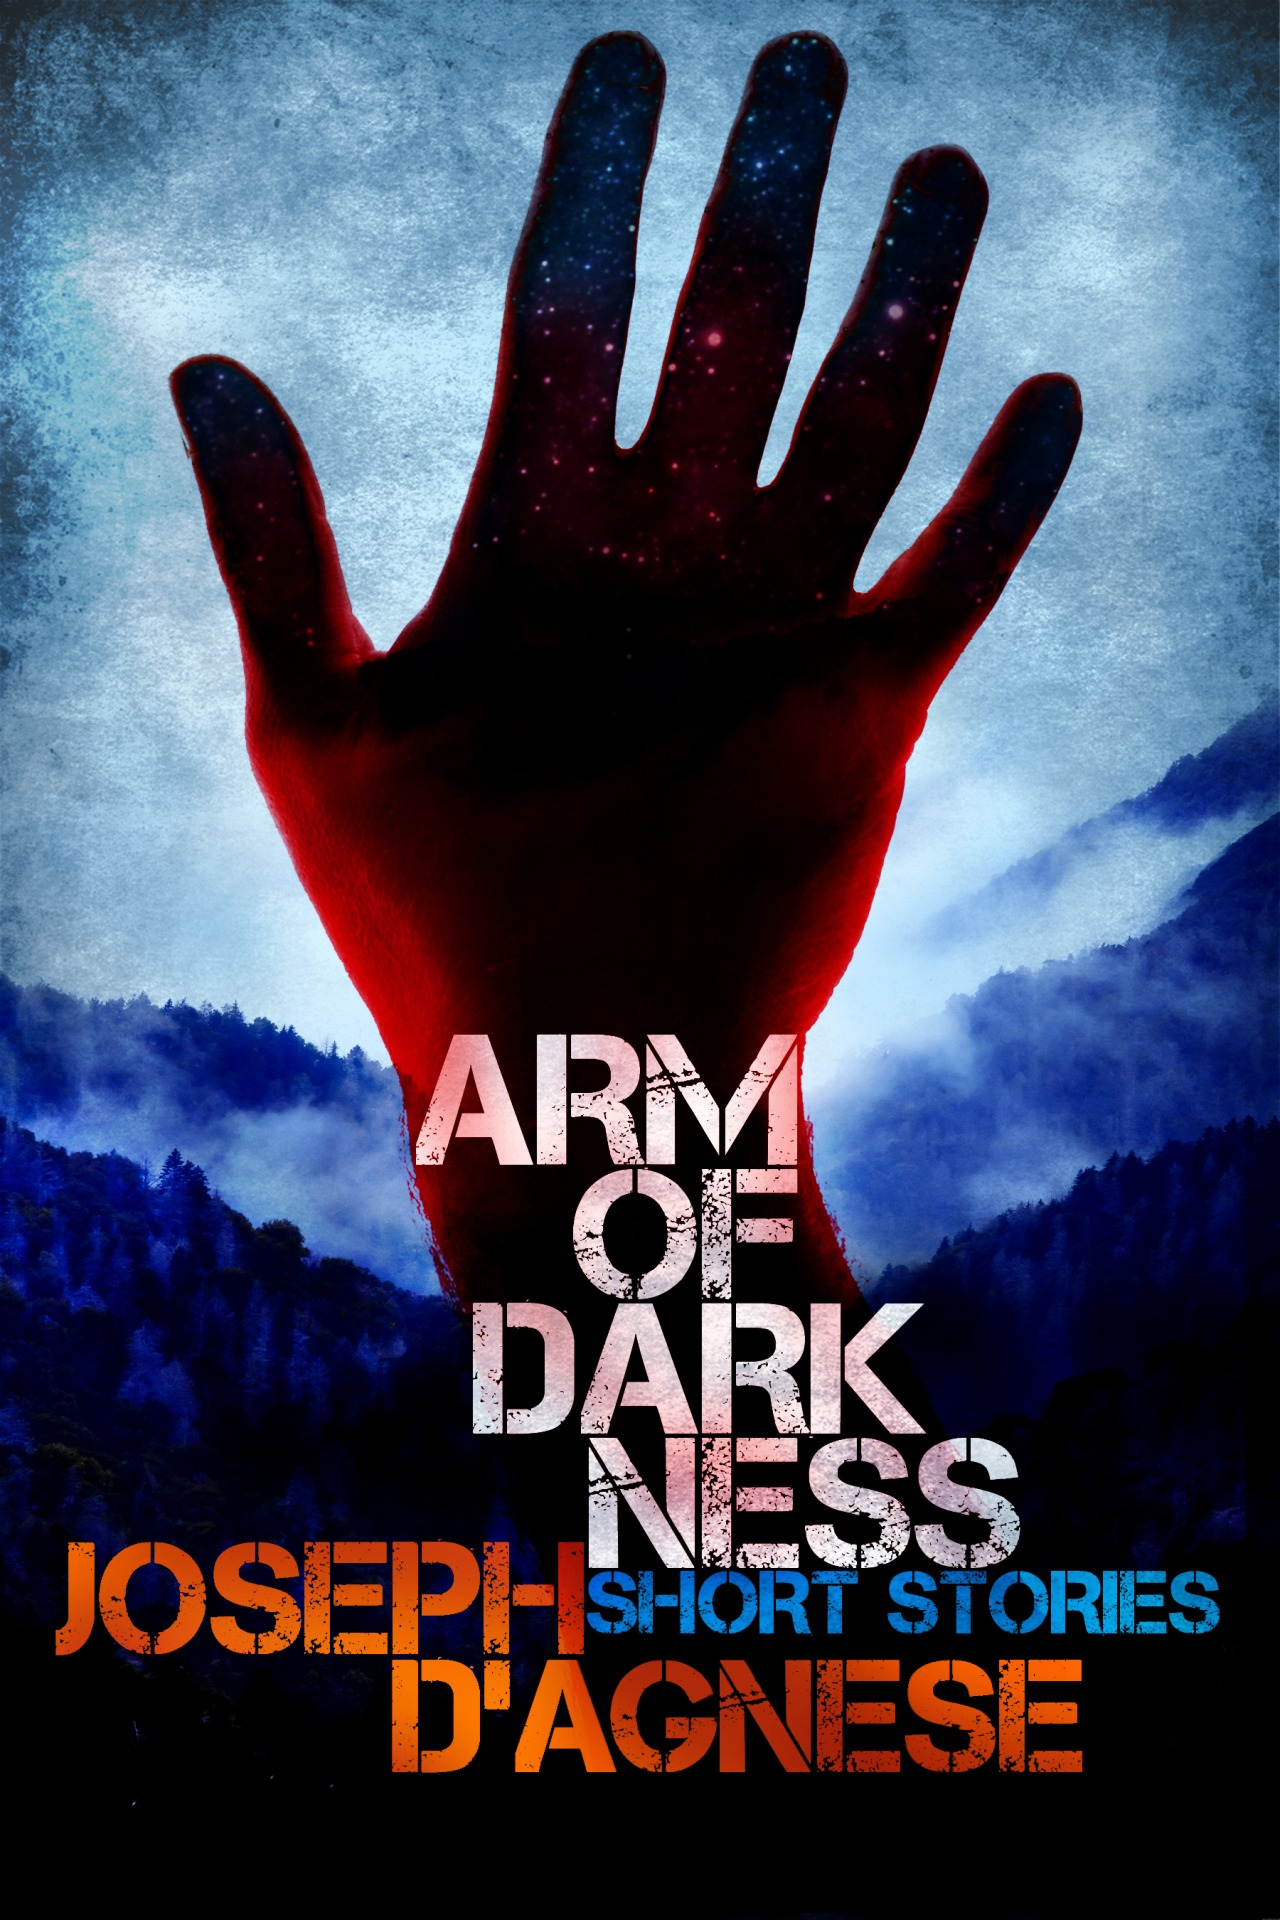 ARM OF DARKNESS.  A mysterious demonic stranger intrudes upon the lives of unsuspecting people, forcing them to make choices with horrific consequences. Six short stories.  * * *  His hand is fashioned from the night sky.  It is powerful, dark, deadly.  He dwells in the world's oldest mountains and always comes bearing gifts.  Truth is, he cares nothing for you. He is a trickster, a prankster, a demonic being who desires only to wreak casual violence on every human he meets.  He's about to offer you a bargain.   Piece of advice? Don't trust him.   * * *    ARM OF DARKNESS  contains six short stories— Skullworm, Roadhouse, Glow, Kin, Sunshine Lady  and the origin story,  Arm of Darkness —for a total of 30,000 words. Three novel excerpts are also included in this e-book.   Available:    Kindle (US)     Kindle (UK)    Nook    iPad    Kobo    Smashwords    Paperback